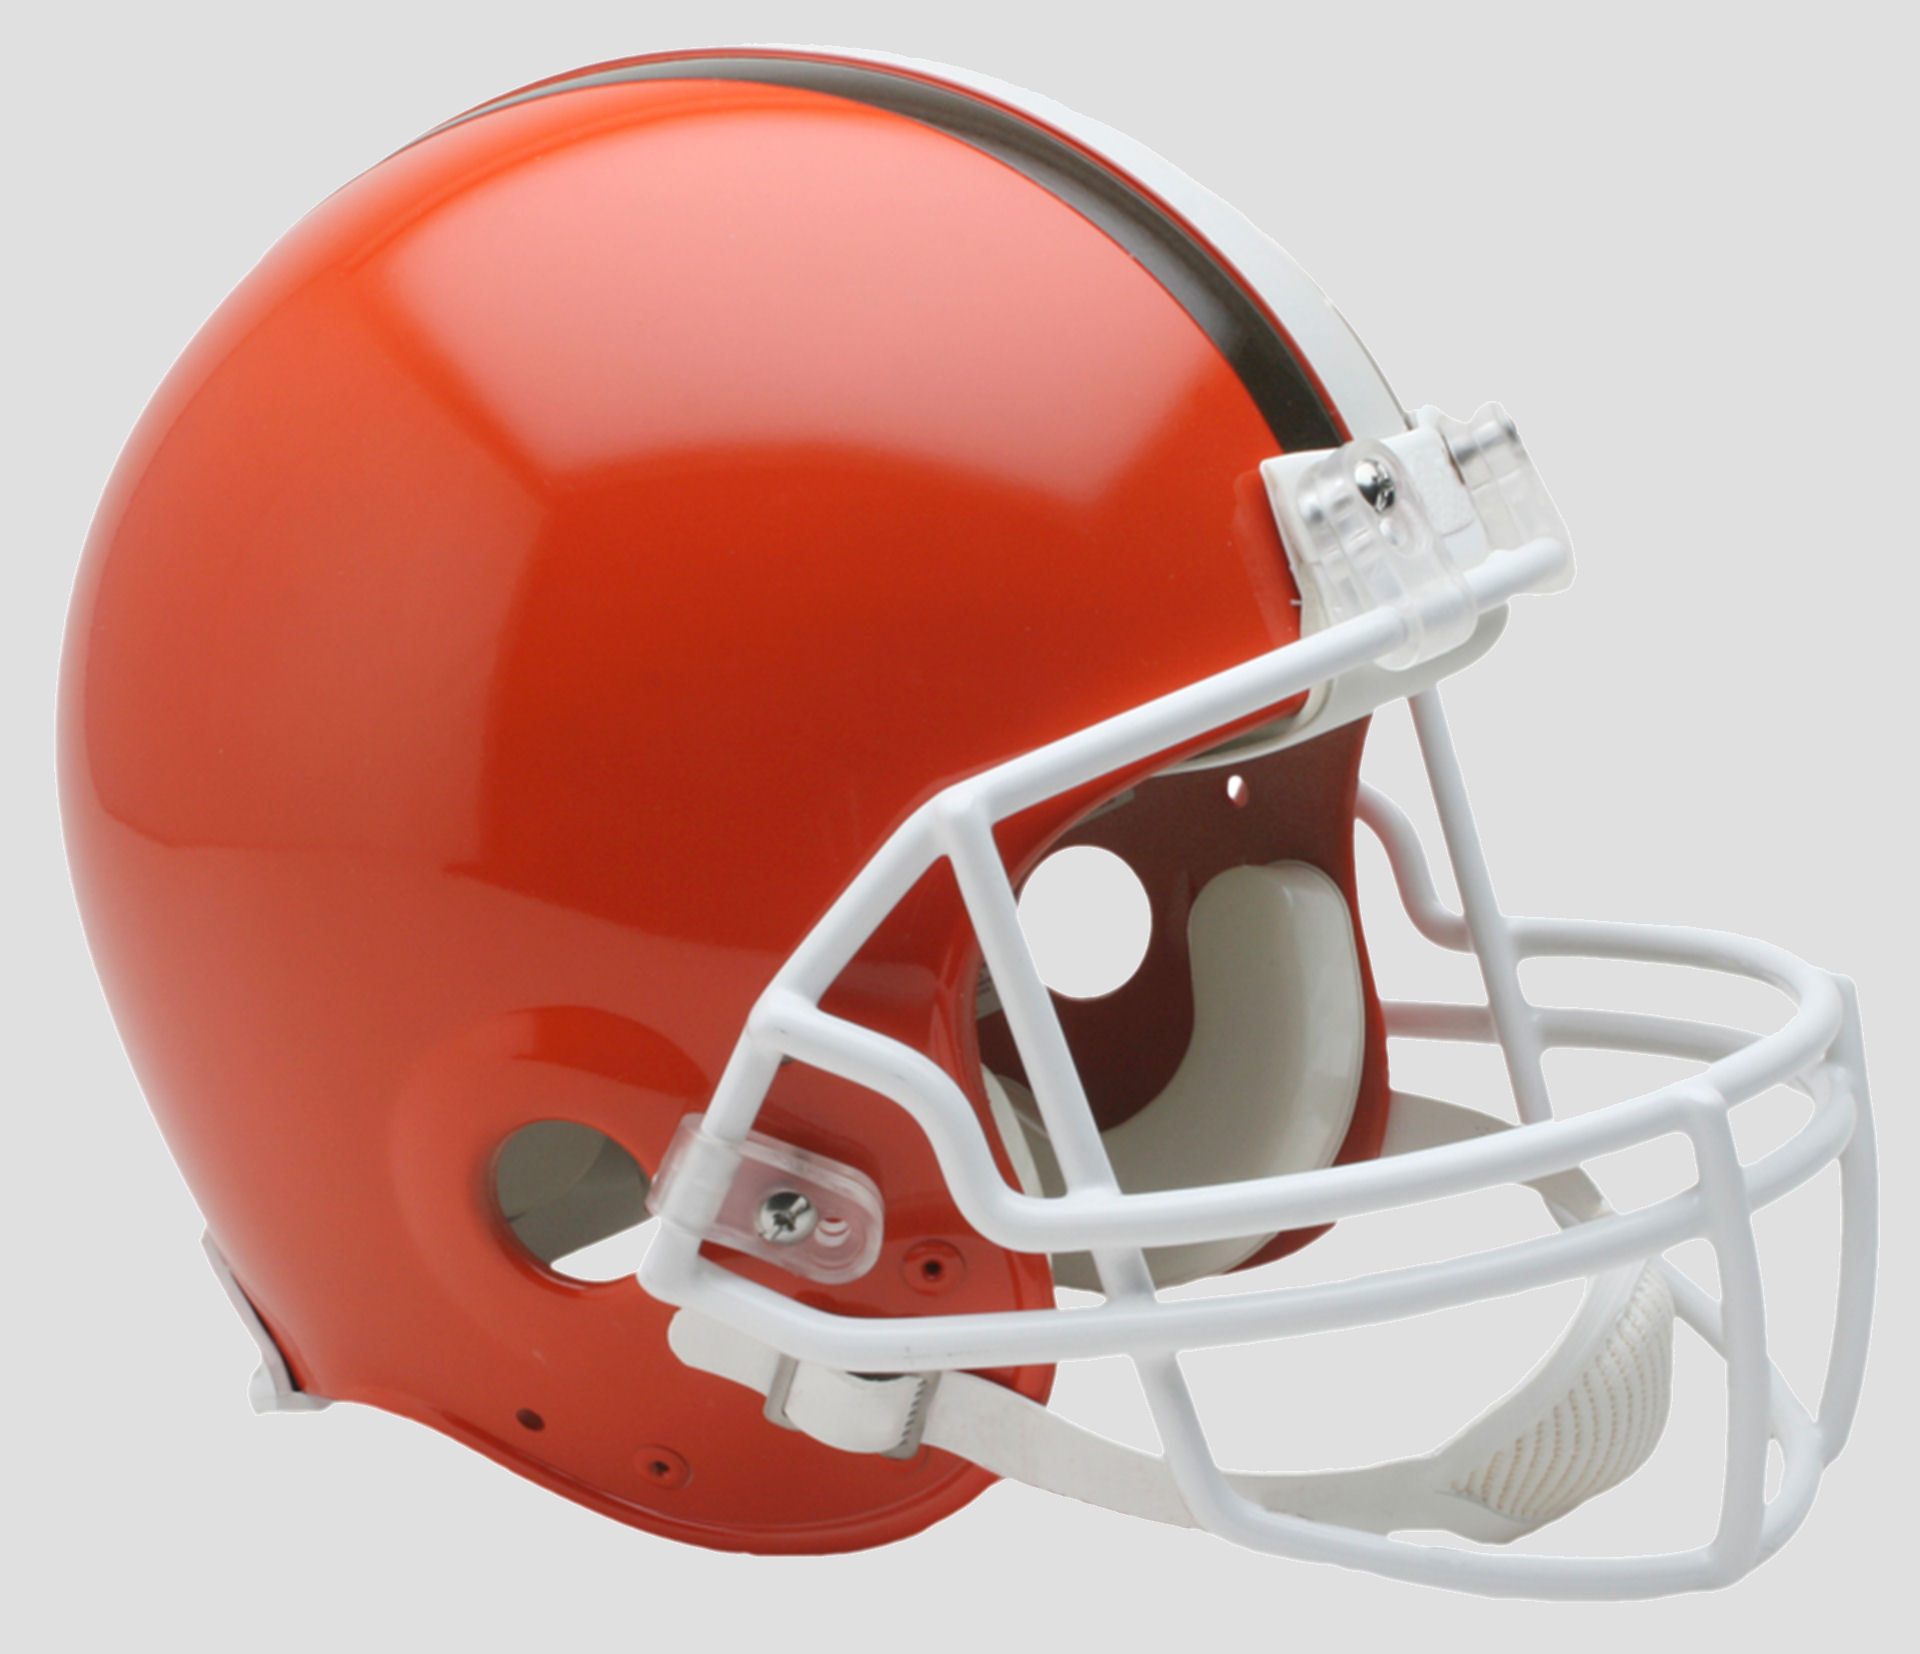 Cleveland Browns 1975 to 2005 Football Helmet